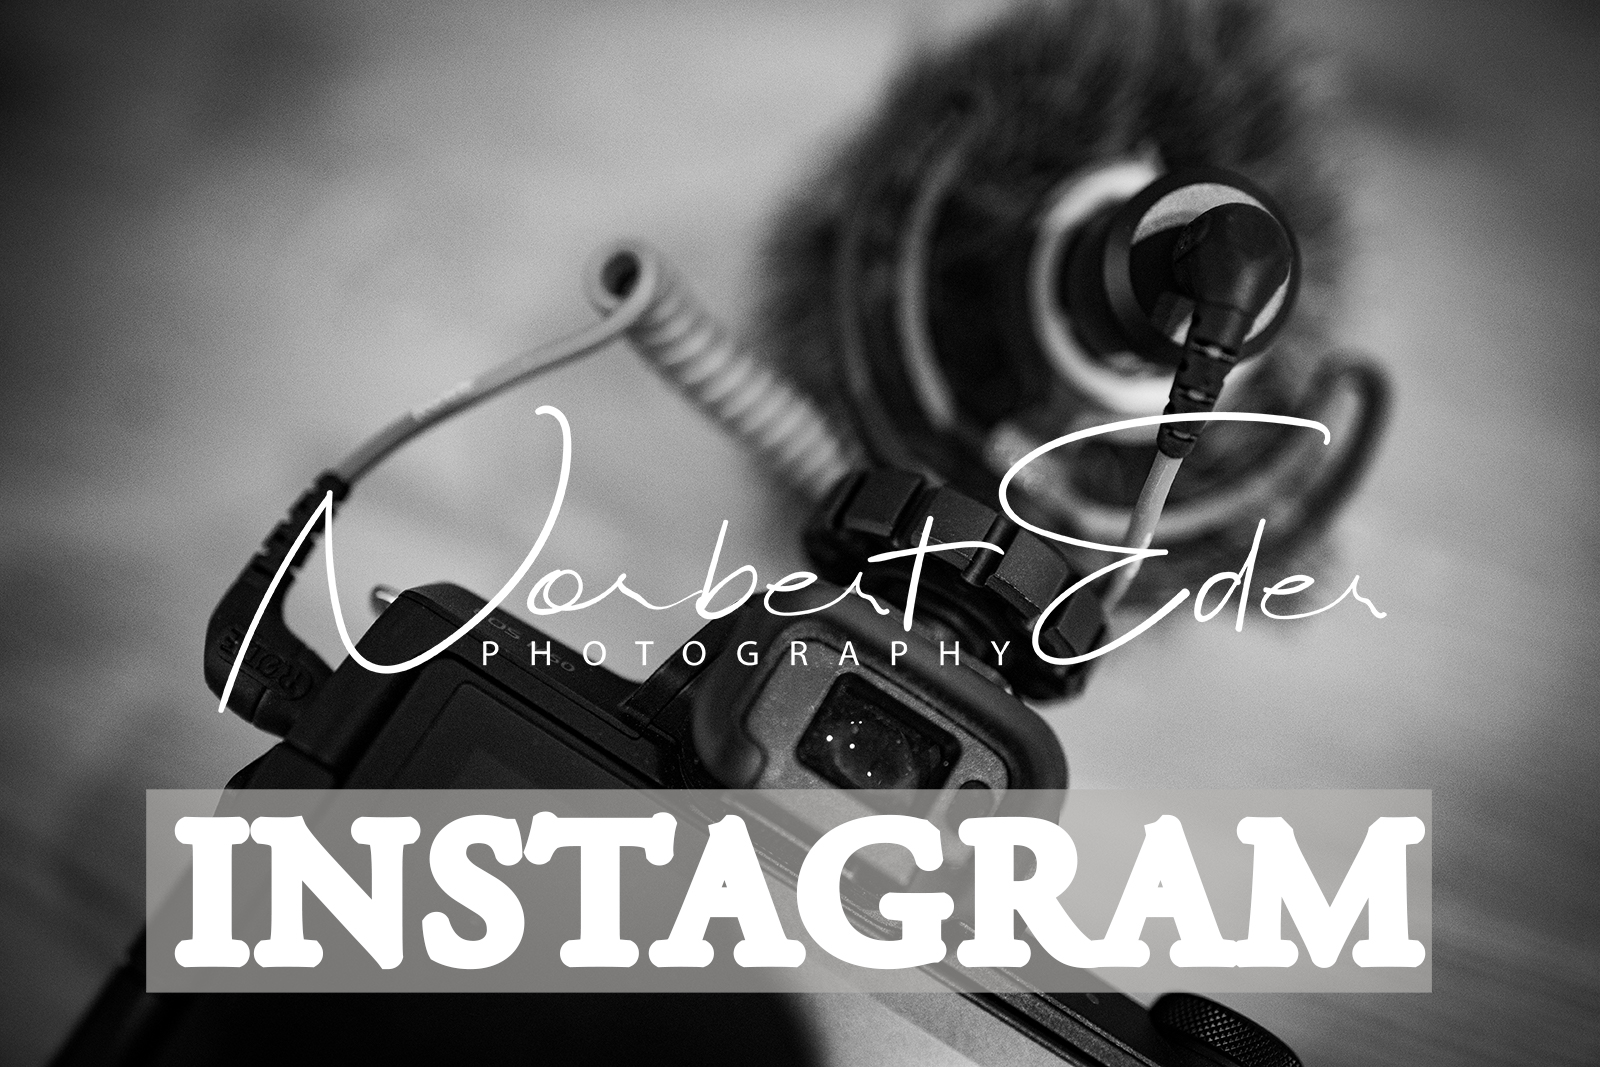 Norbert Eder Photography auf Instagram